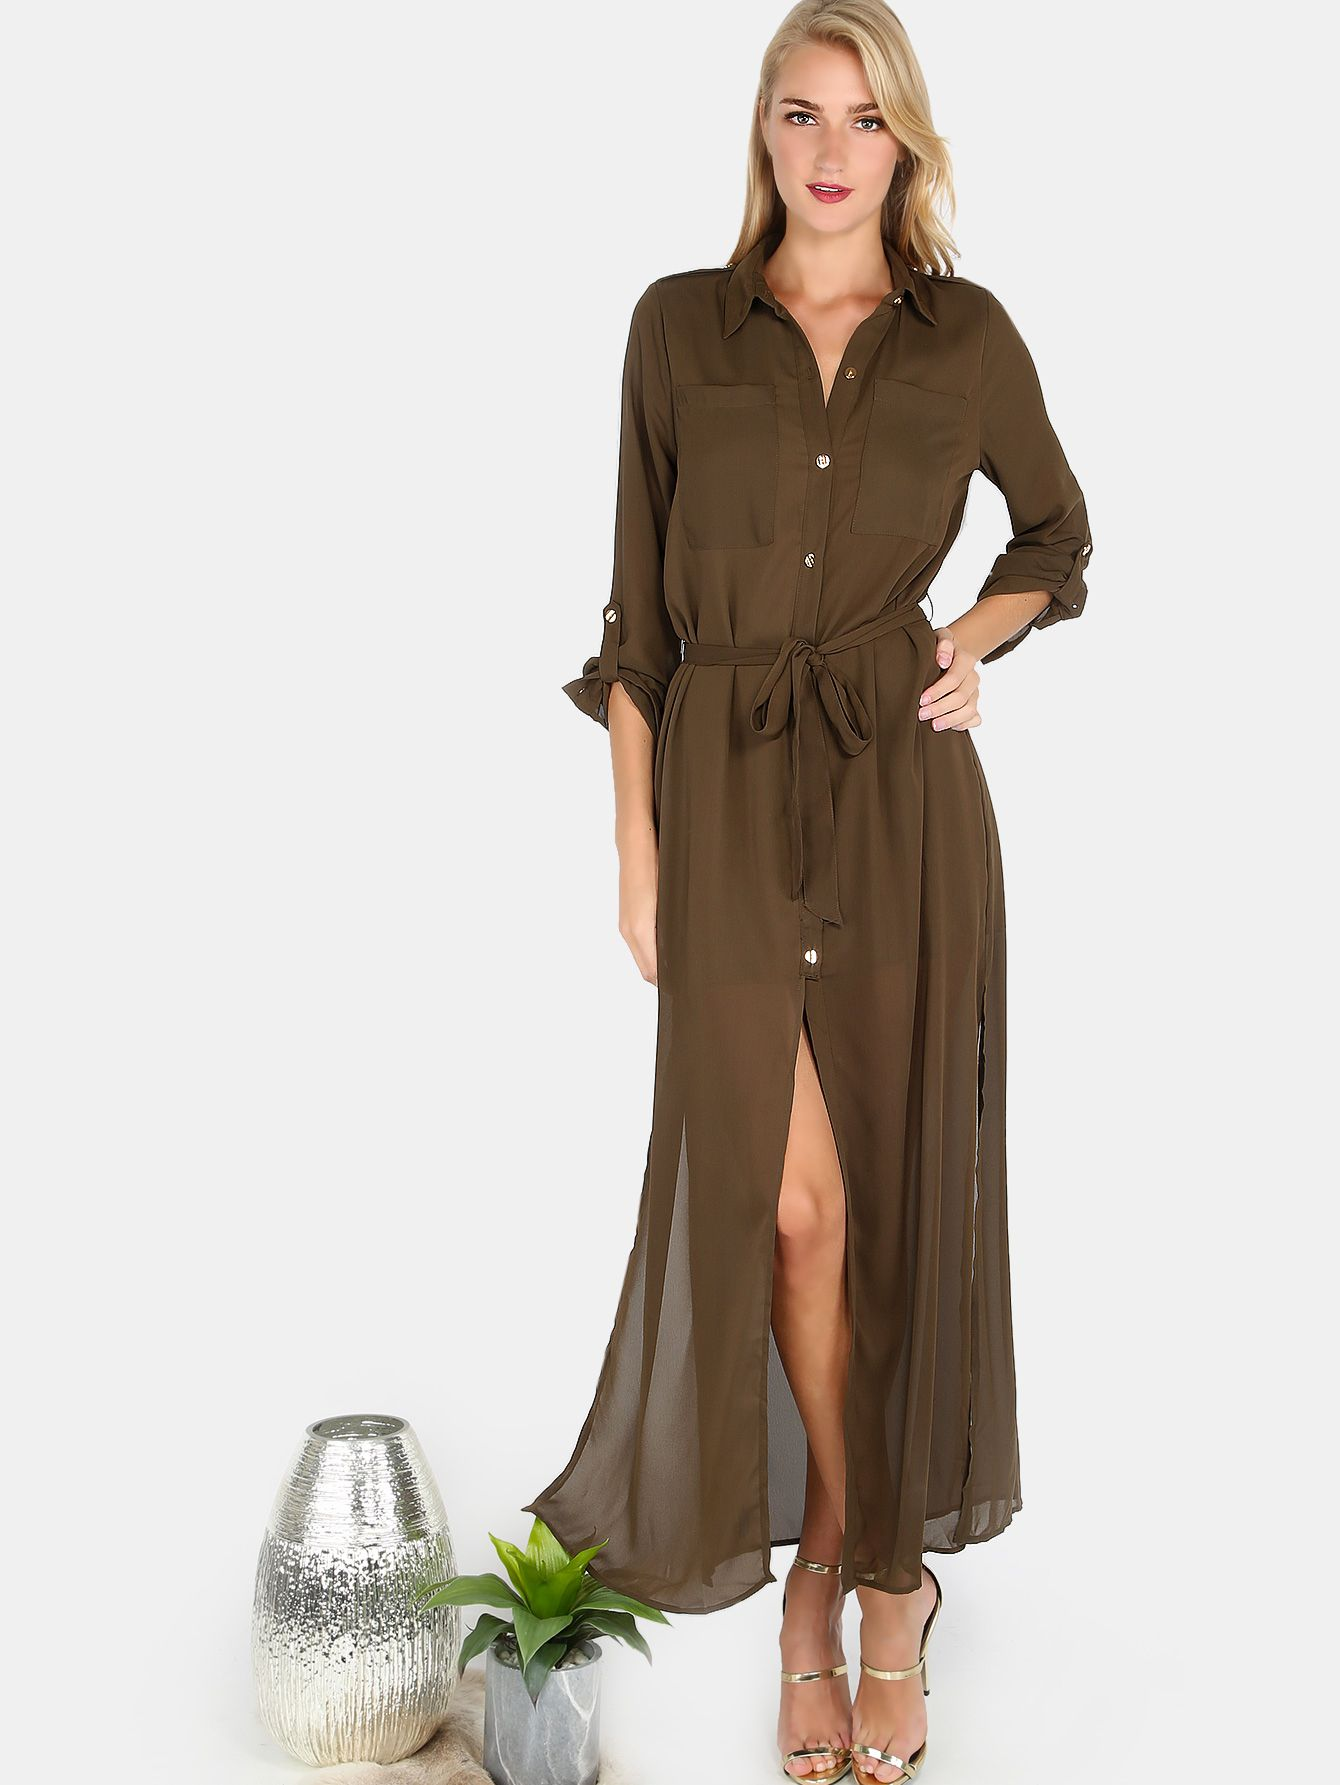 60bf2a11 Collared Button Down Belted Maxi Dress OLIVE | ☪Party Perfect ...